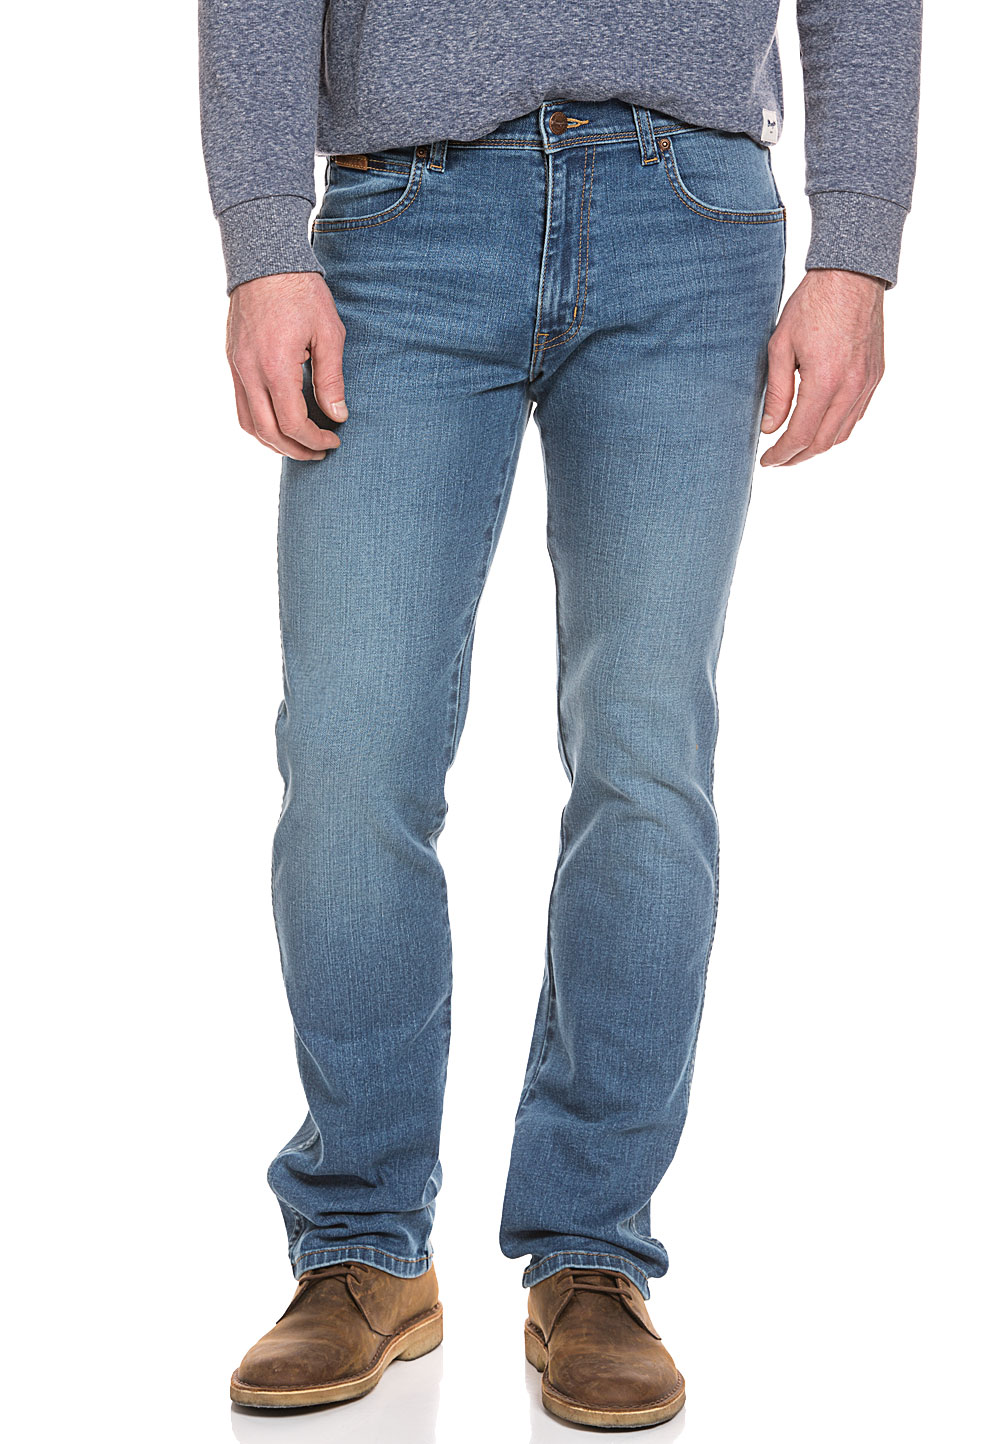 wrangler stretch jeans herren hose denim arizona regular straight fit ebay. Black Bedroom Furniture Sets. Home Design Ideas